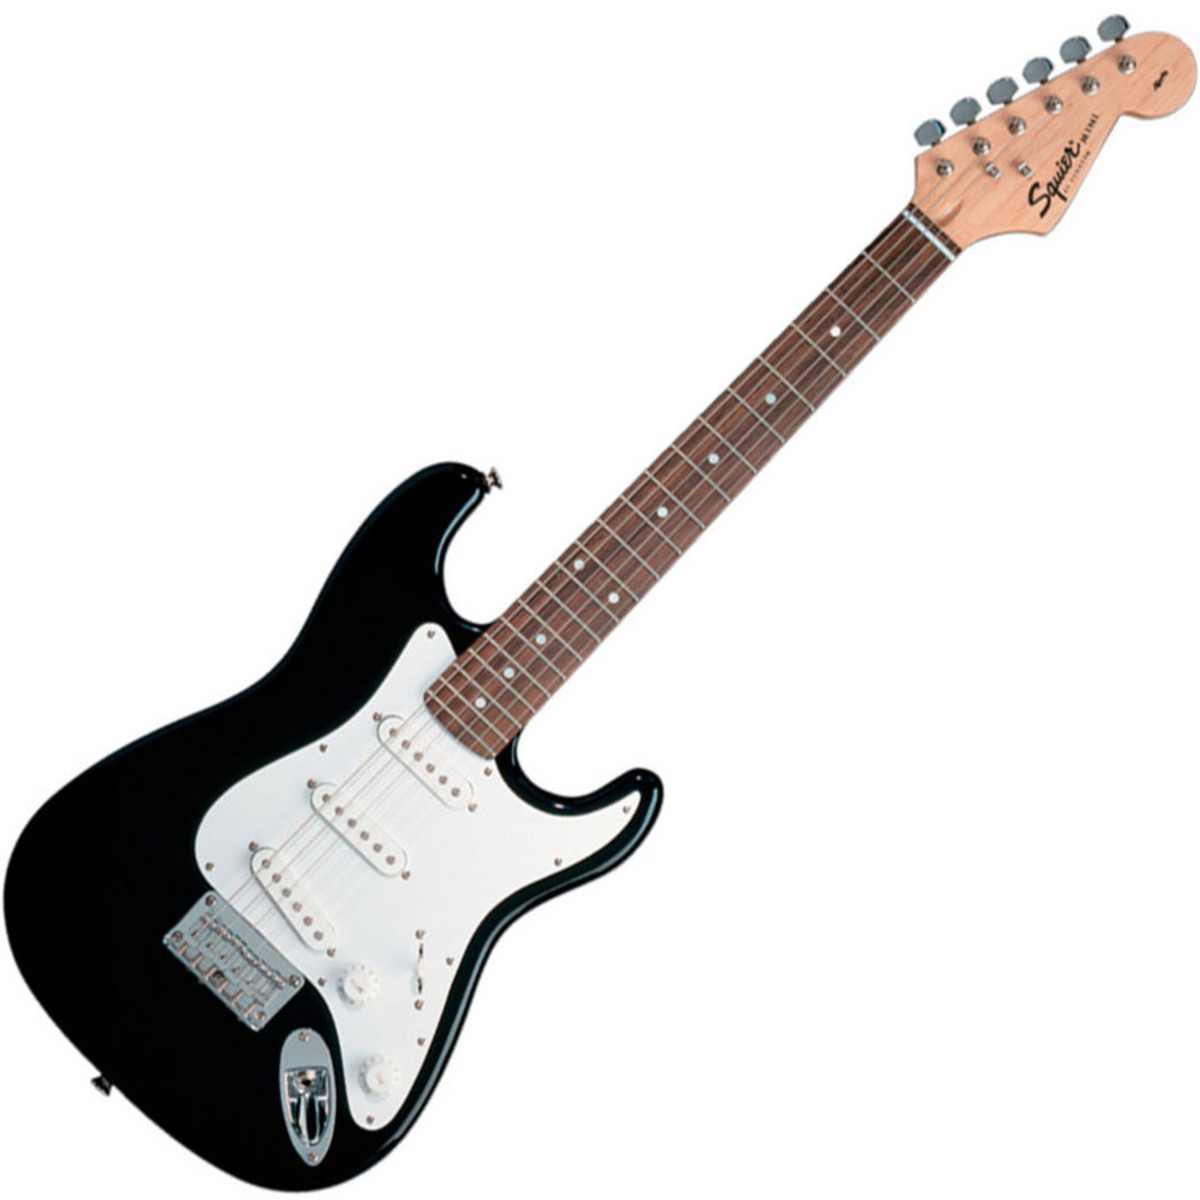 squier by fender mini stratocaster 3 4 size electric guitar black b stock at gear4music. Black Bedroom Furniture Sets. Home Design Ideas